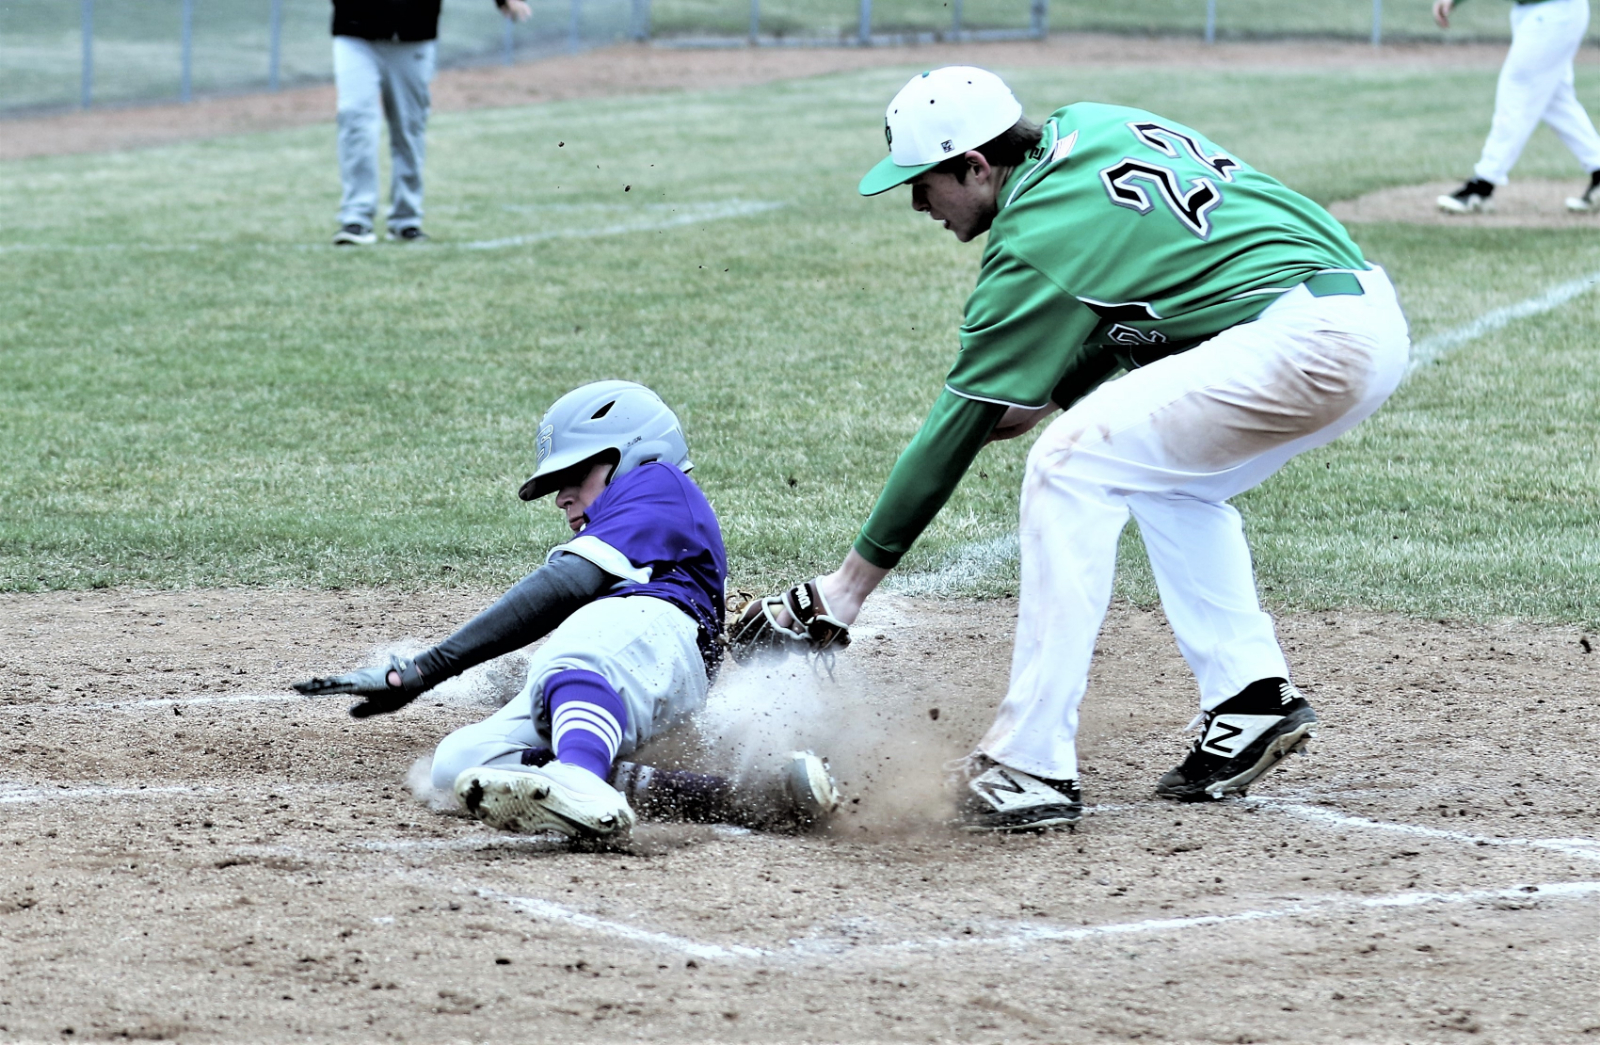 Devon Crouse scores Swanton's third run on a wild pitch and the Bulldogs went on to a 12-2 road victory over the Delta Panthers.